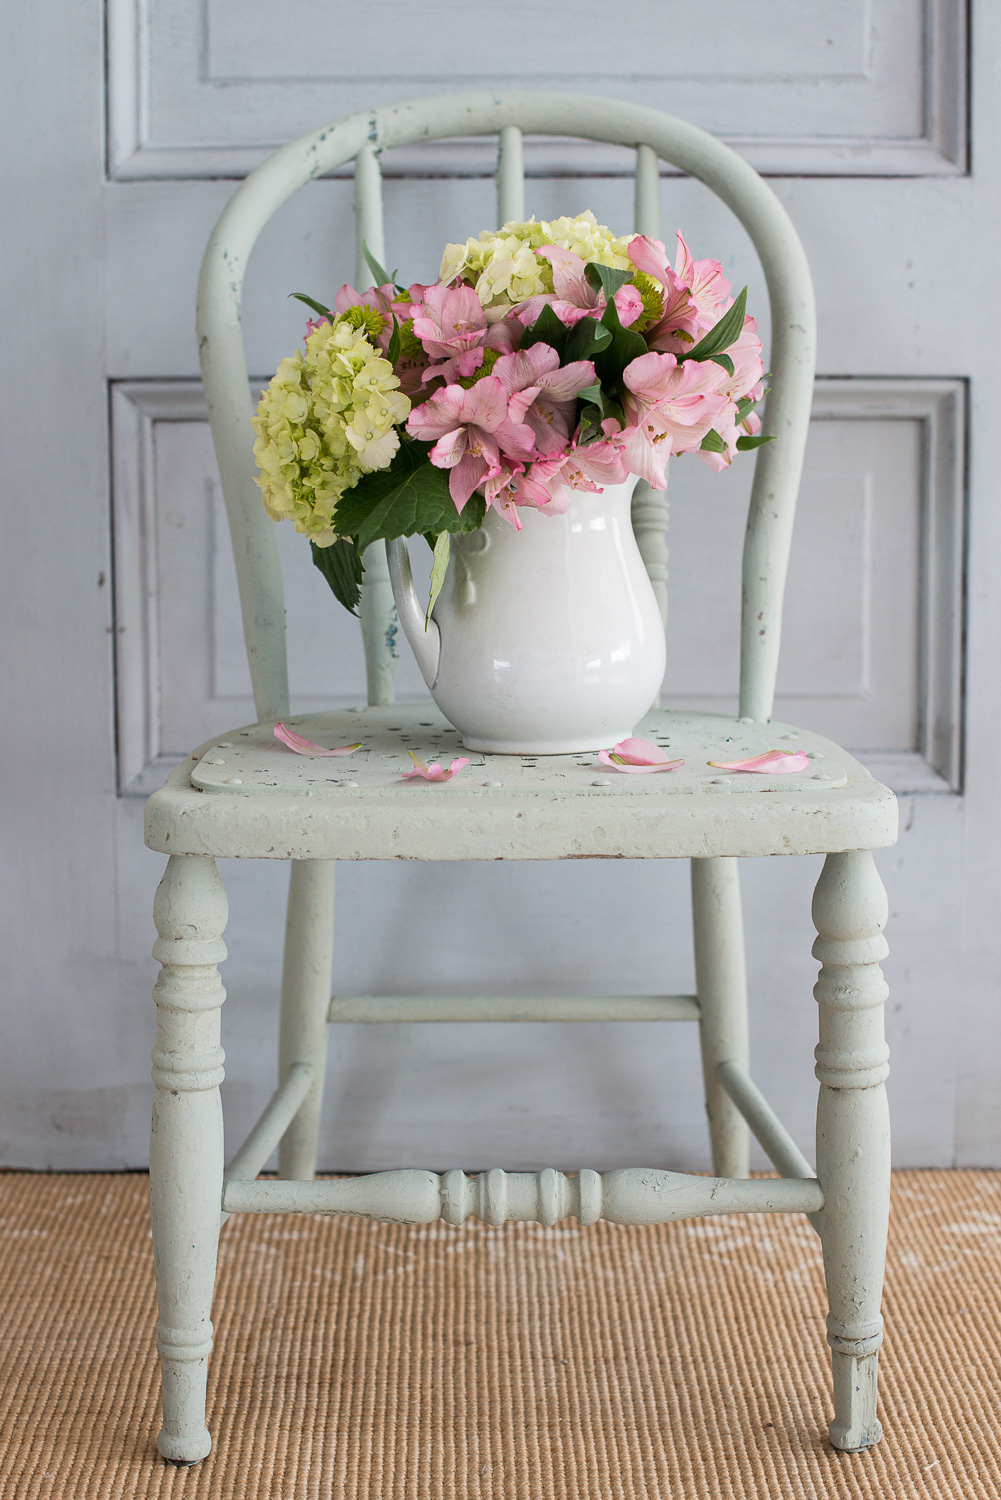 Chair Painted in Miss Mustard Seed's Milk Paint in the Colour Layla's Mint